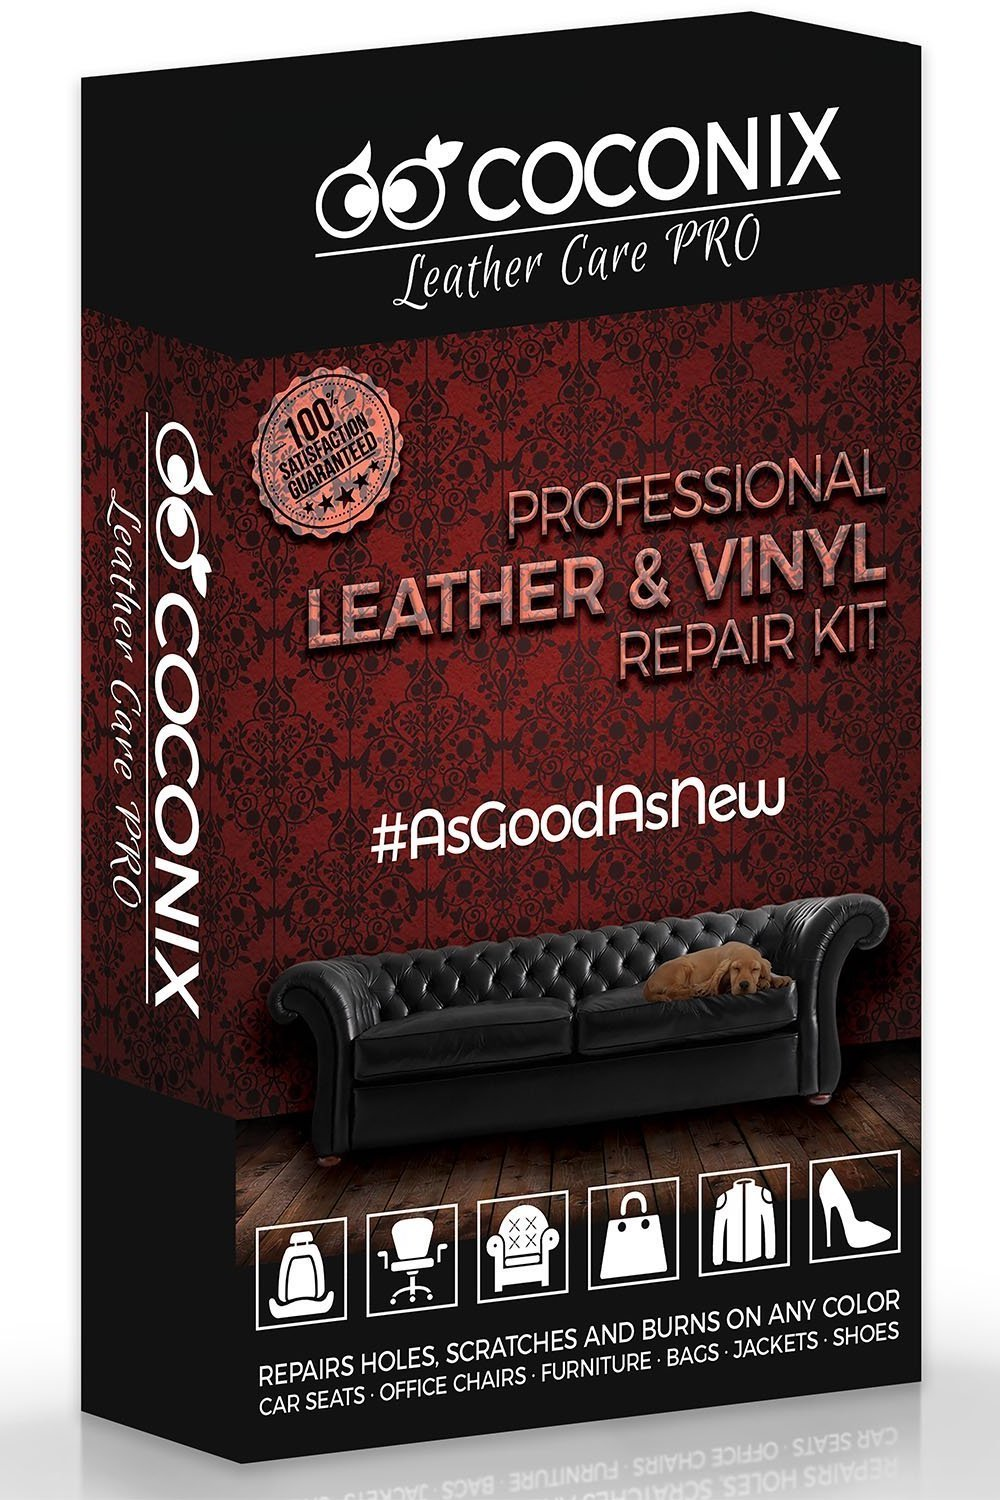 Coconix Leather and Vinyl Repair Kit